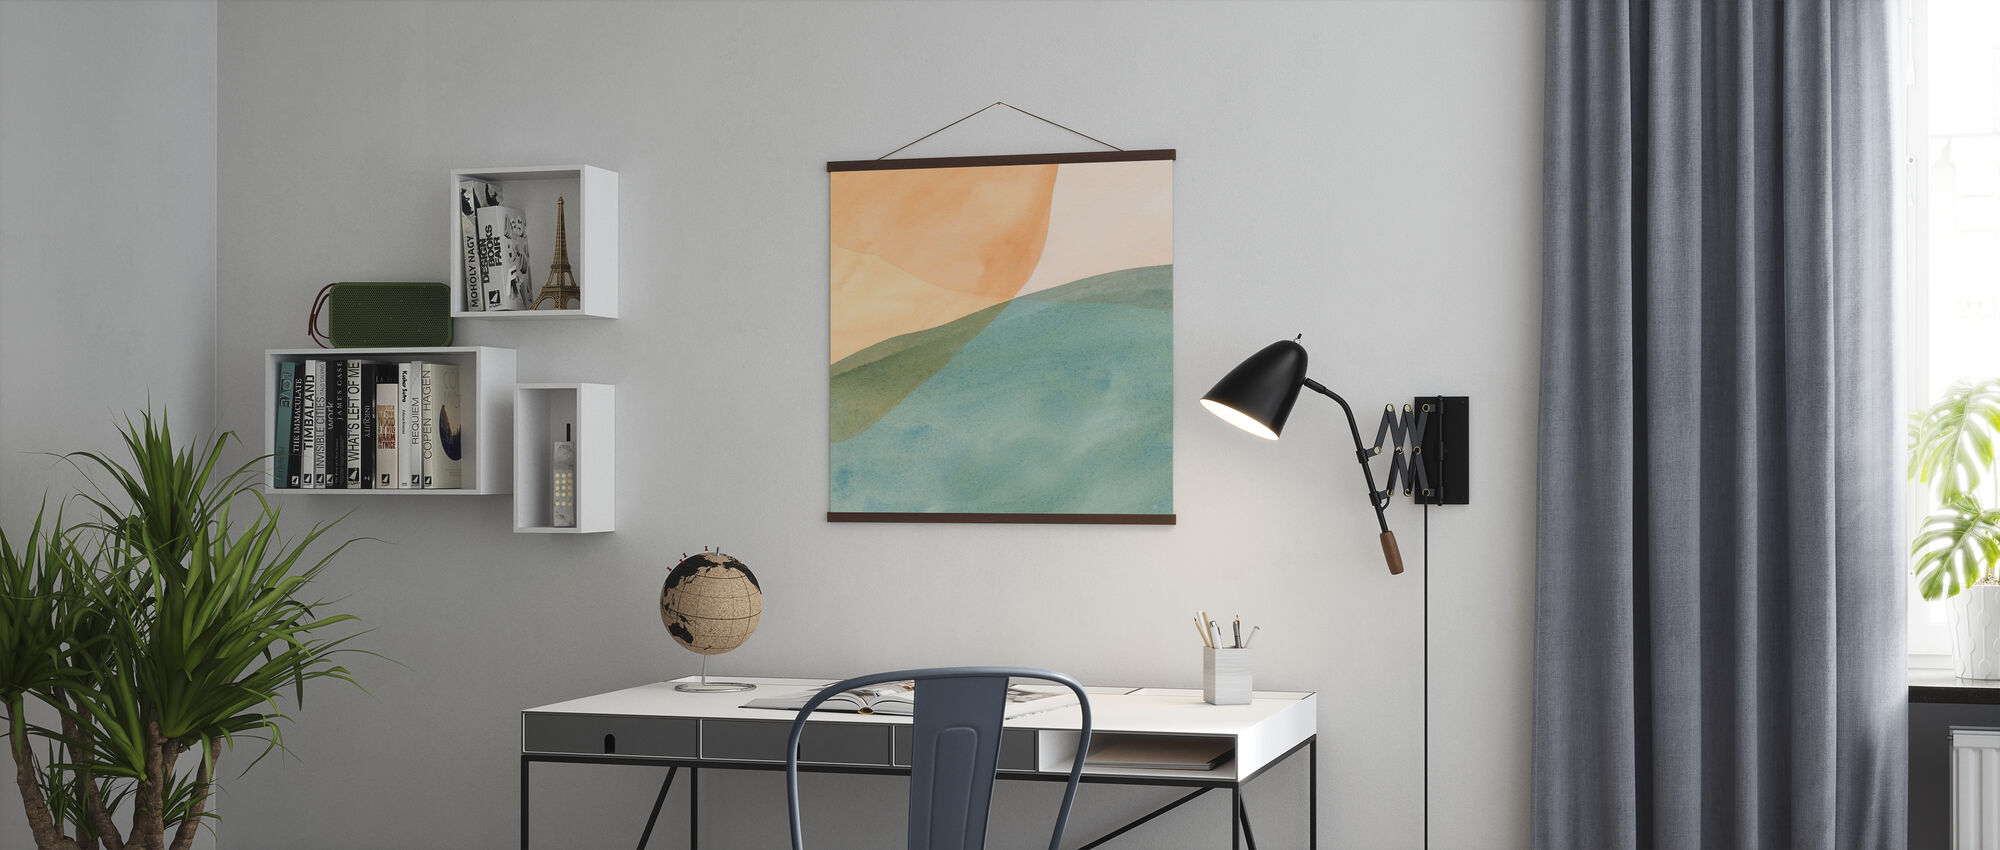 Pastel Color Study - Poster - Office